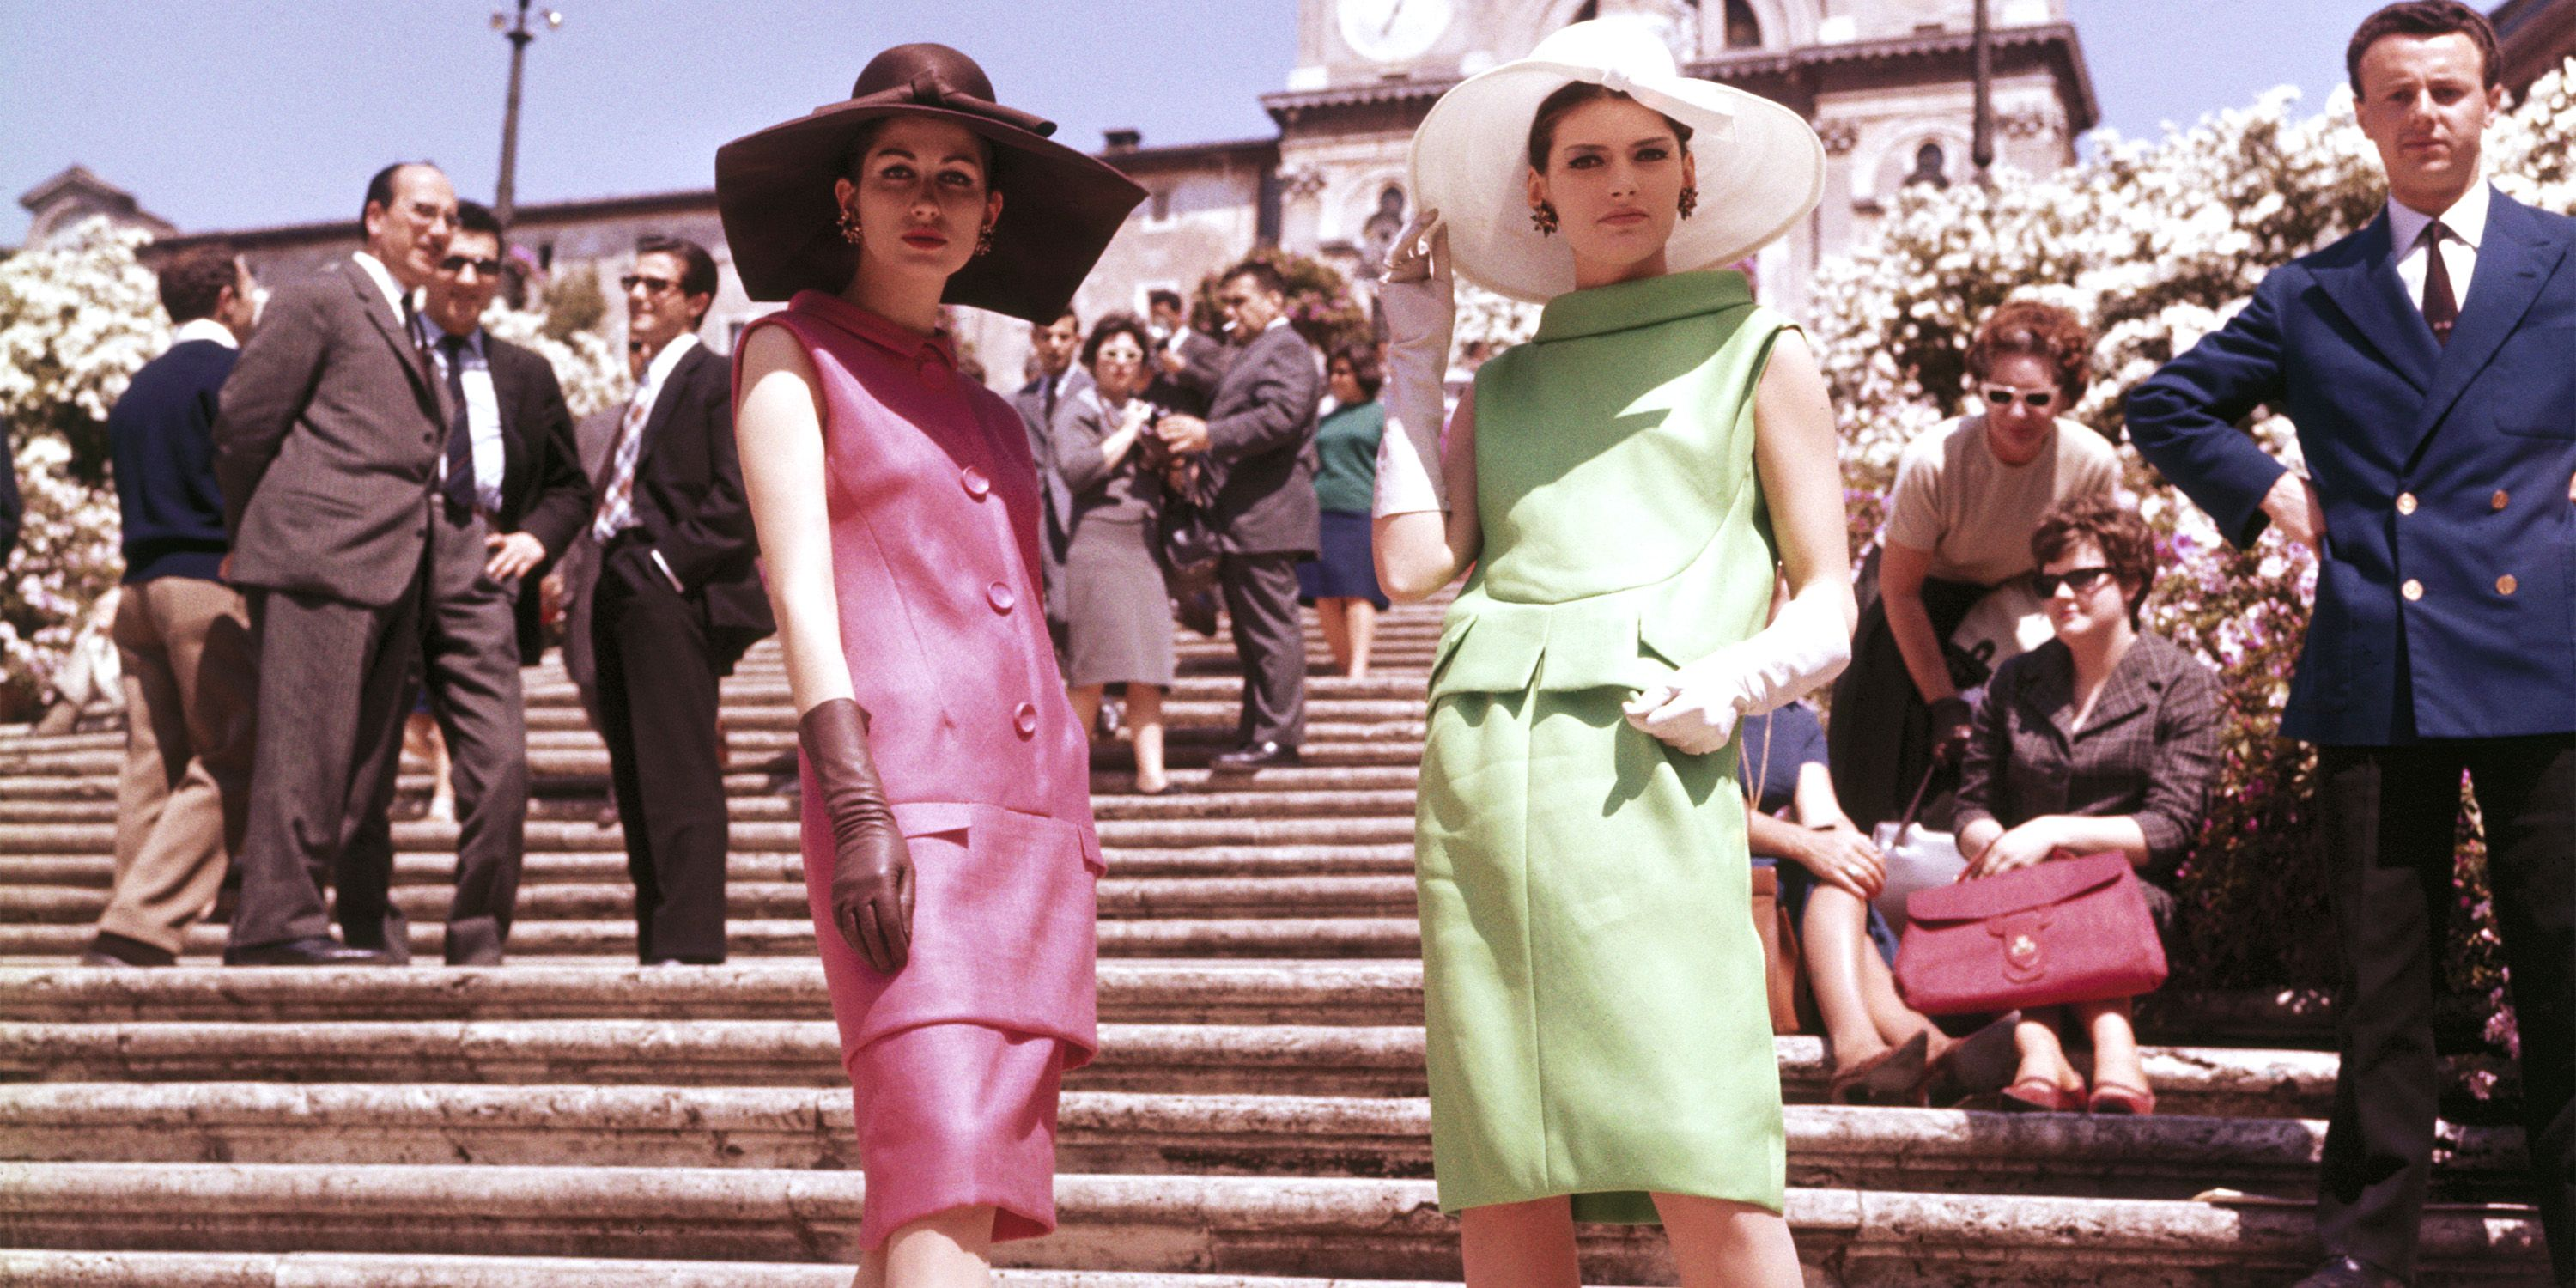 The Best of 1960s Fashion